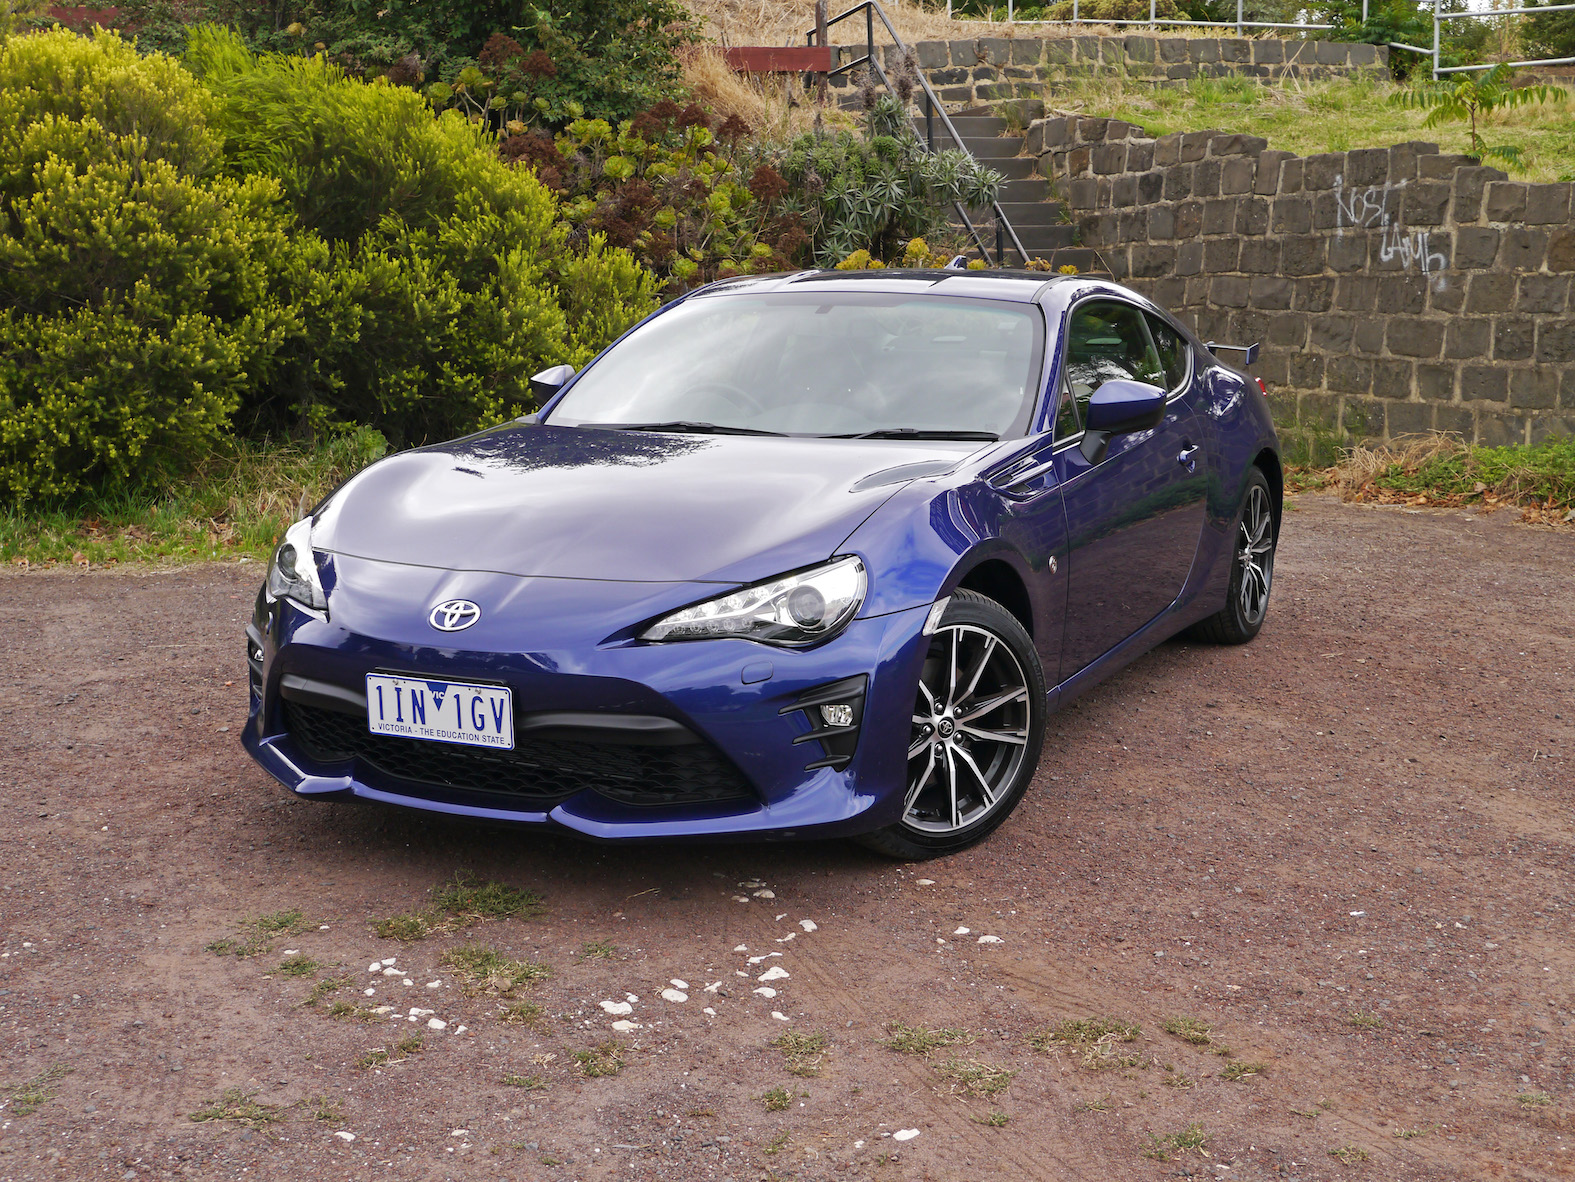 2017 Toyota 86 GTS Automatic | Toyota Takes A Gentle Approach To Improving Its Sports Star